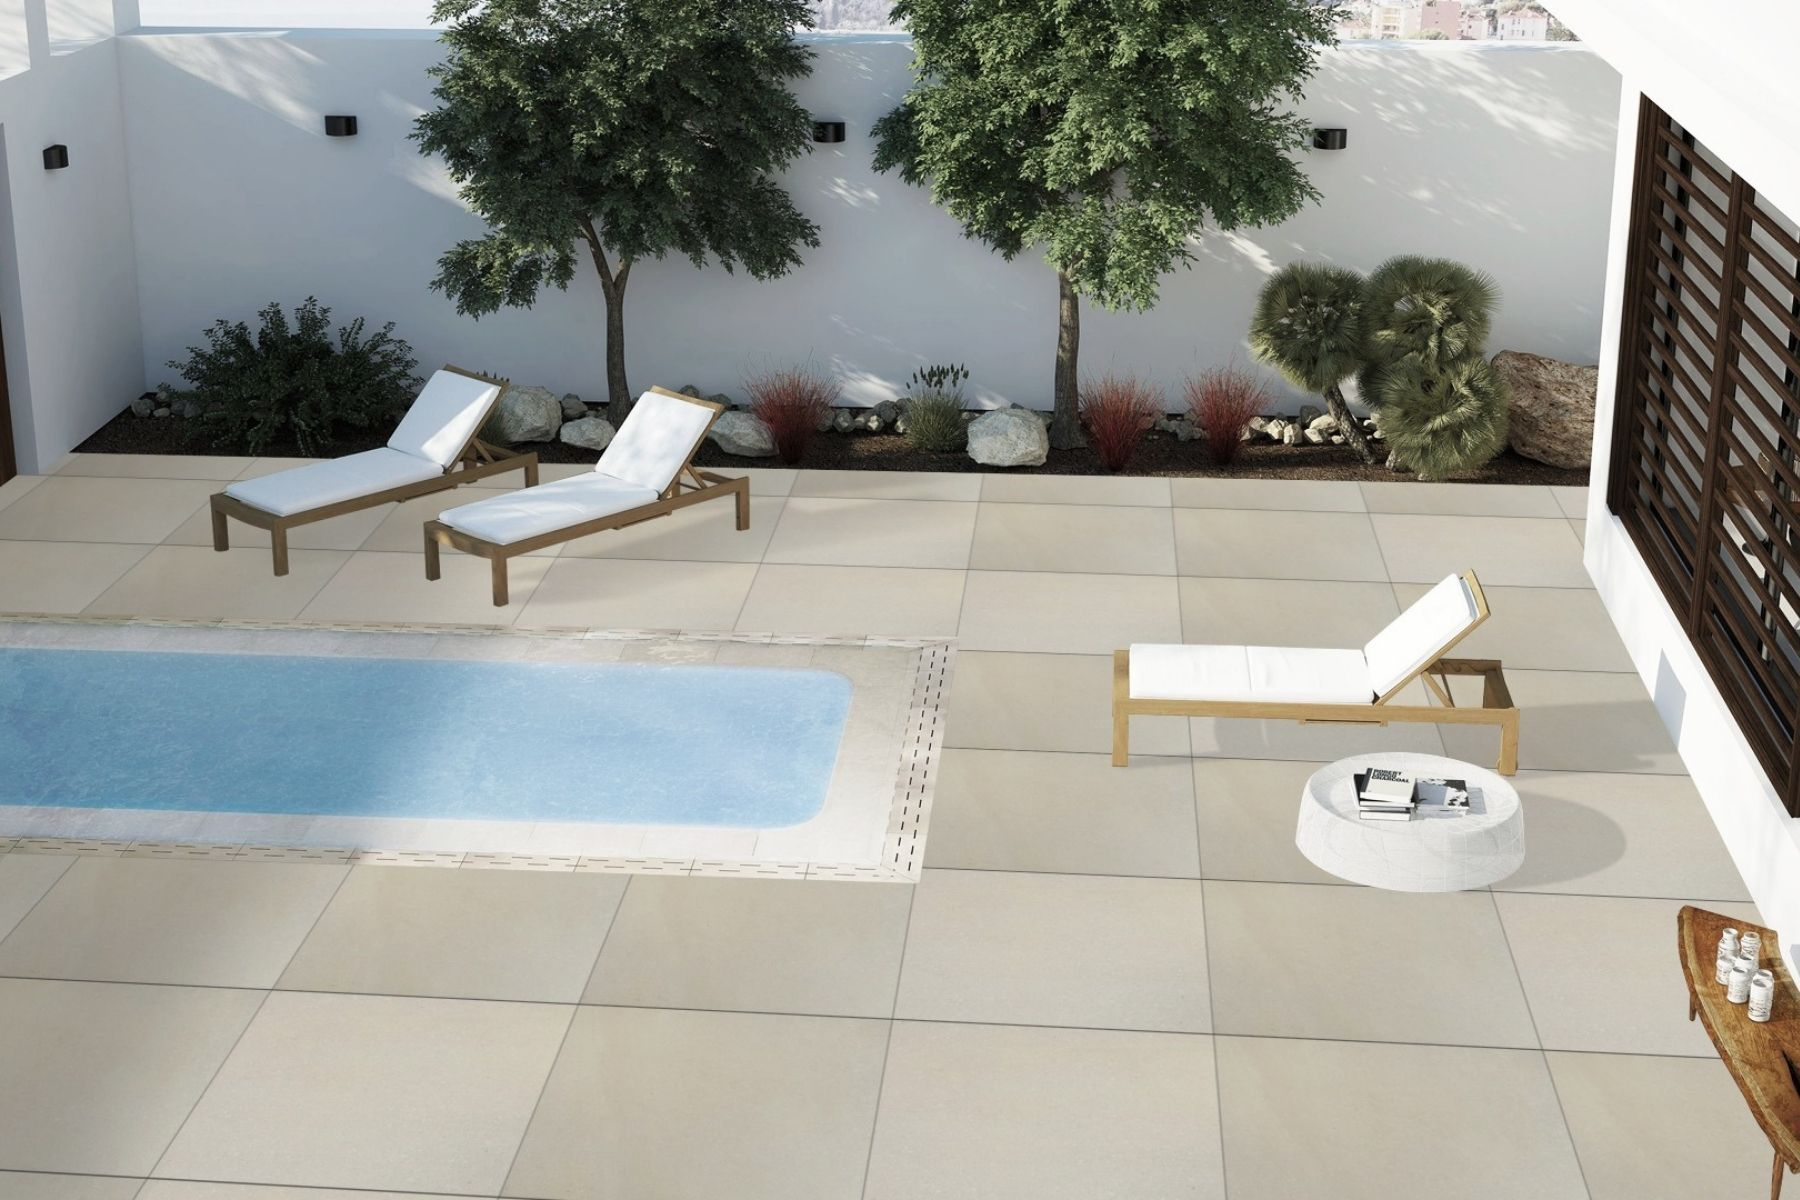 pool pavers in porcelain light cream ivory colour